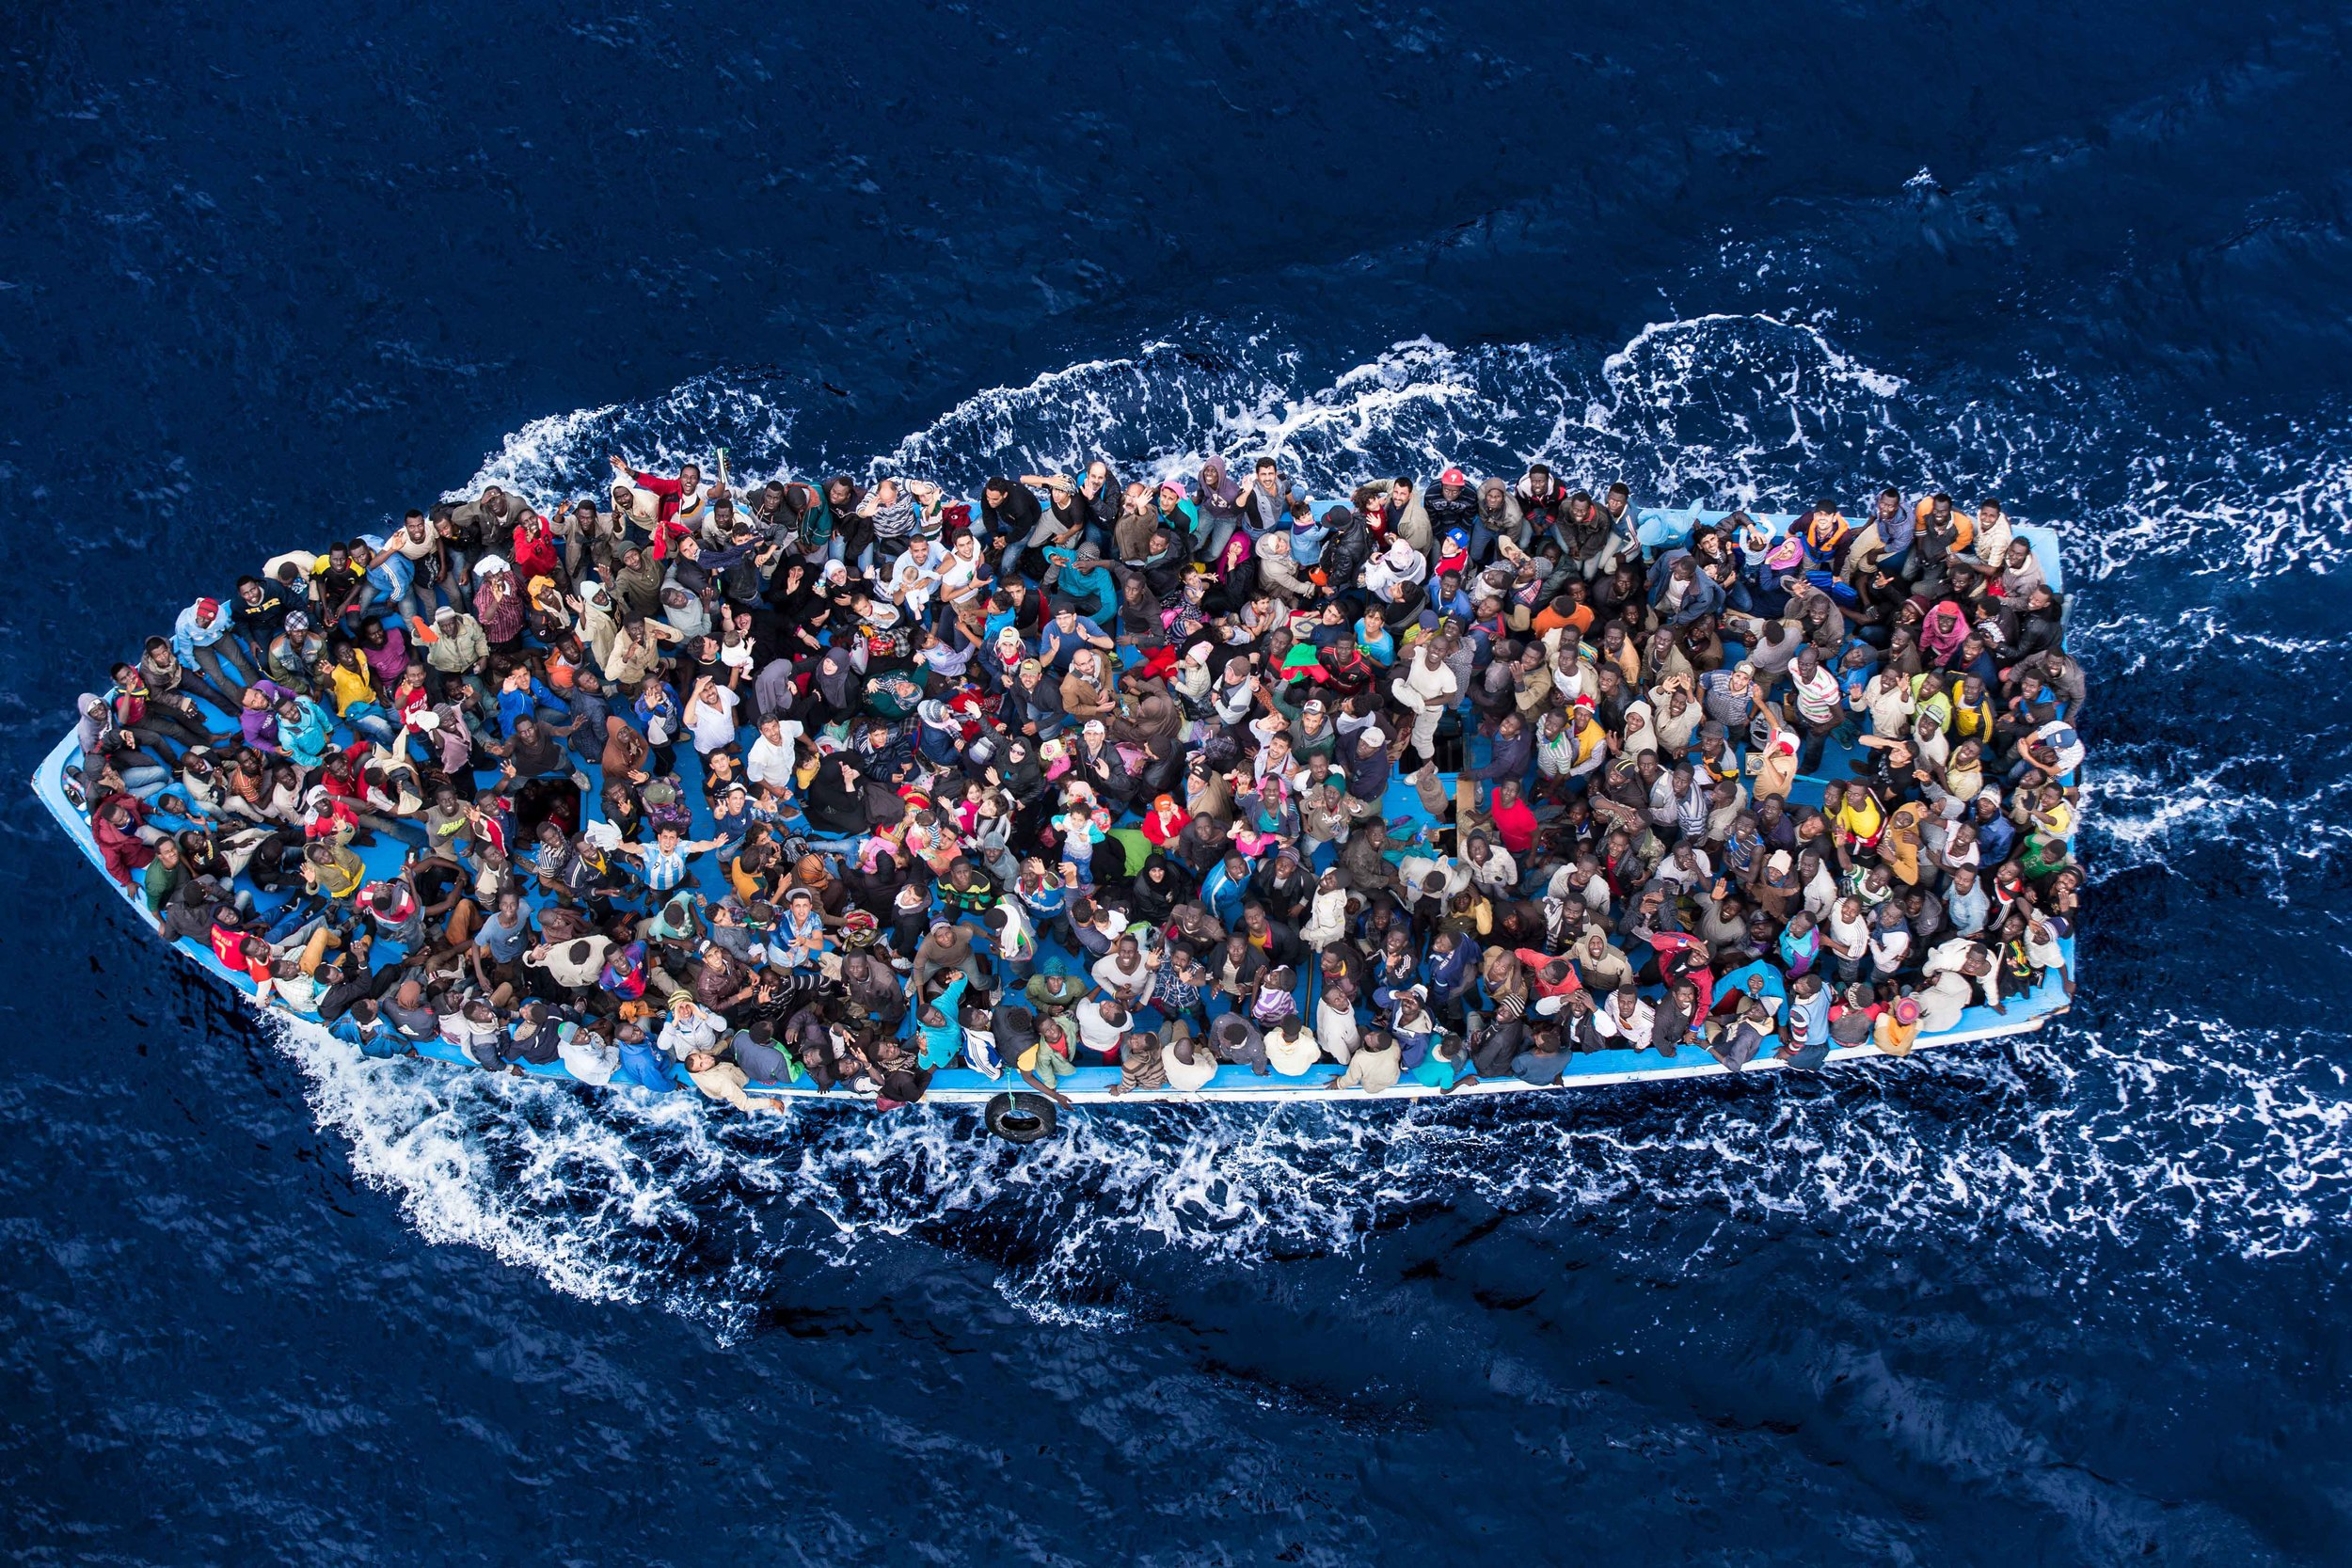 Hundreds of refugees and migrants aboard a fishing boat are pictured moments before being rescued by the Italian Navy as part of their Mare Nostrum operation in June 2014. There has been a dramatic growth in the number of refugees seeking safety by undertaking dangerous sea journeys, including on the Mediterranean (Massimo Sestini/ The Italian Coastguard )